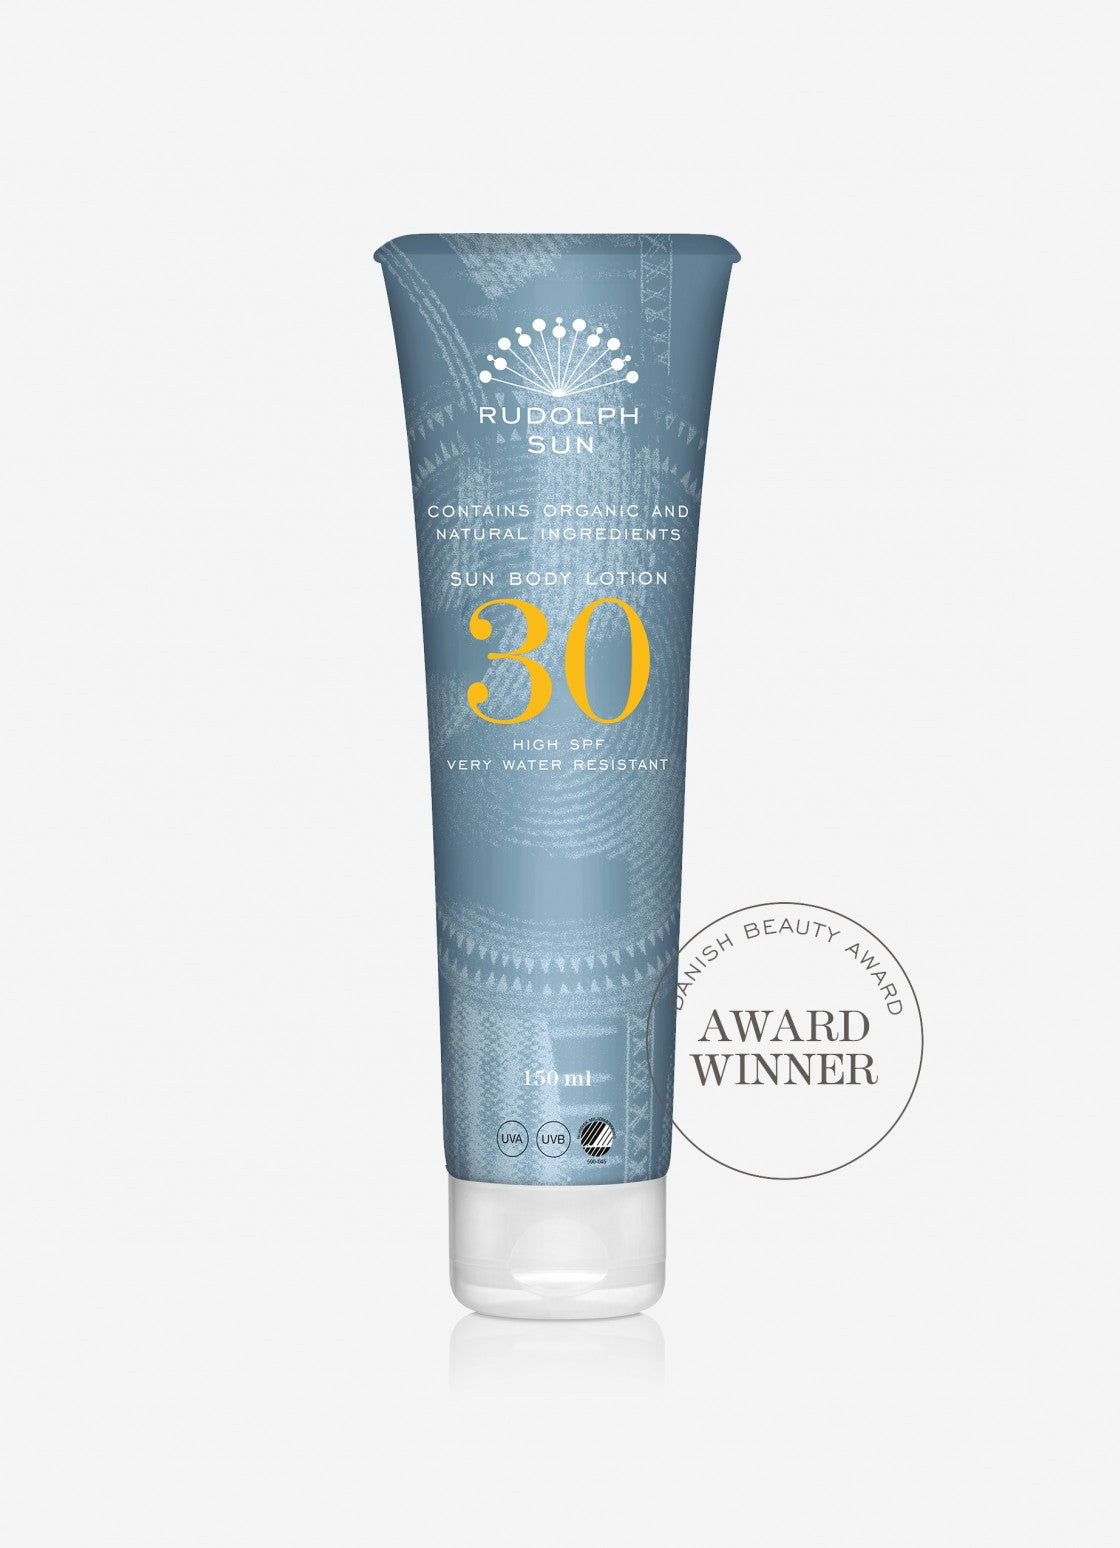 Organic sun body lotion 30 SPF